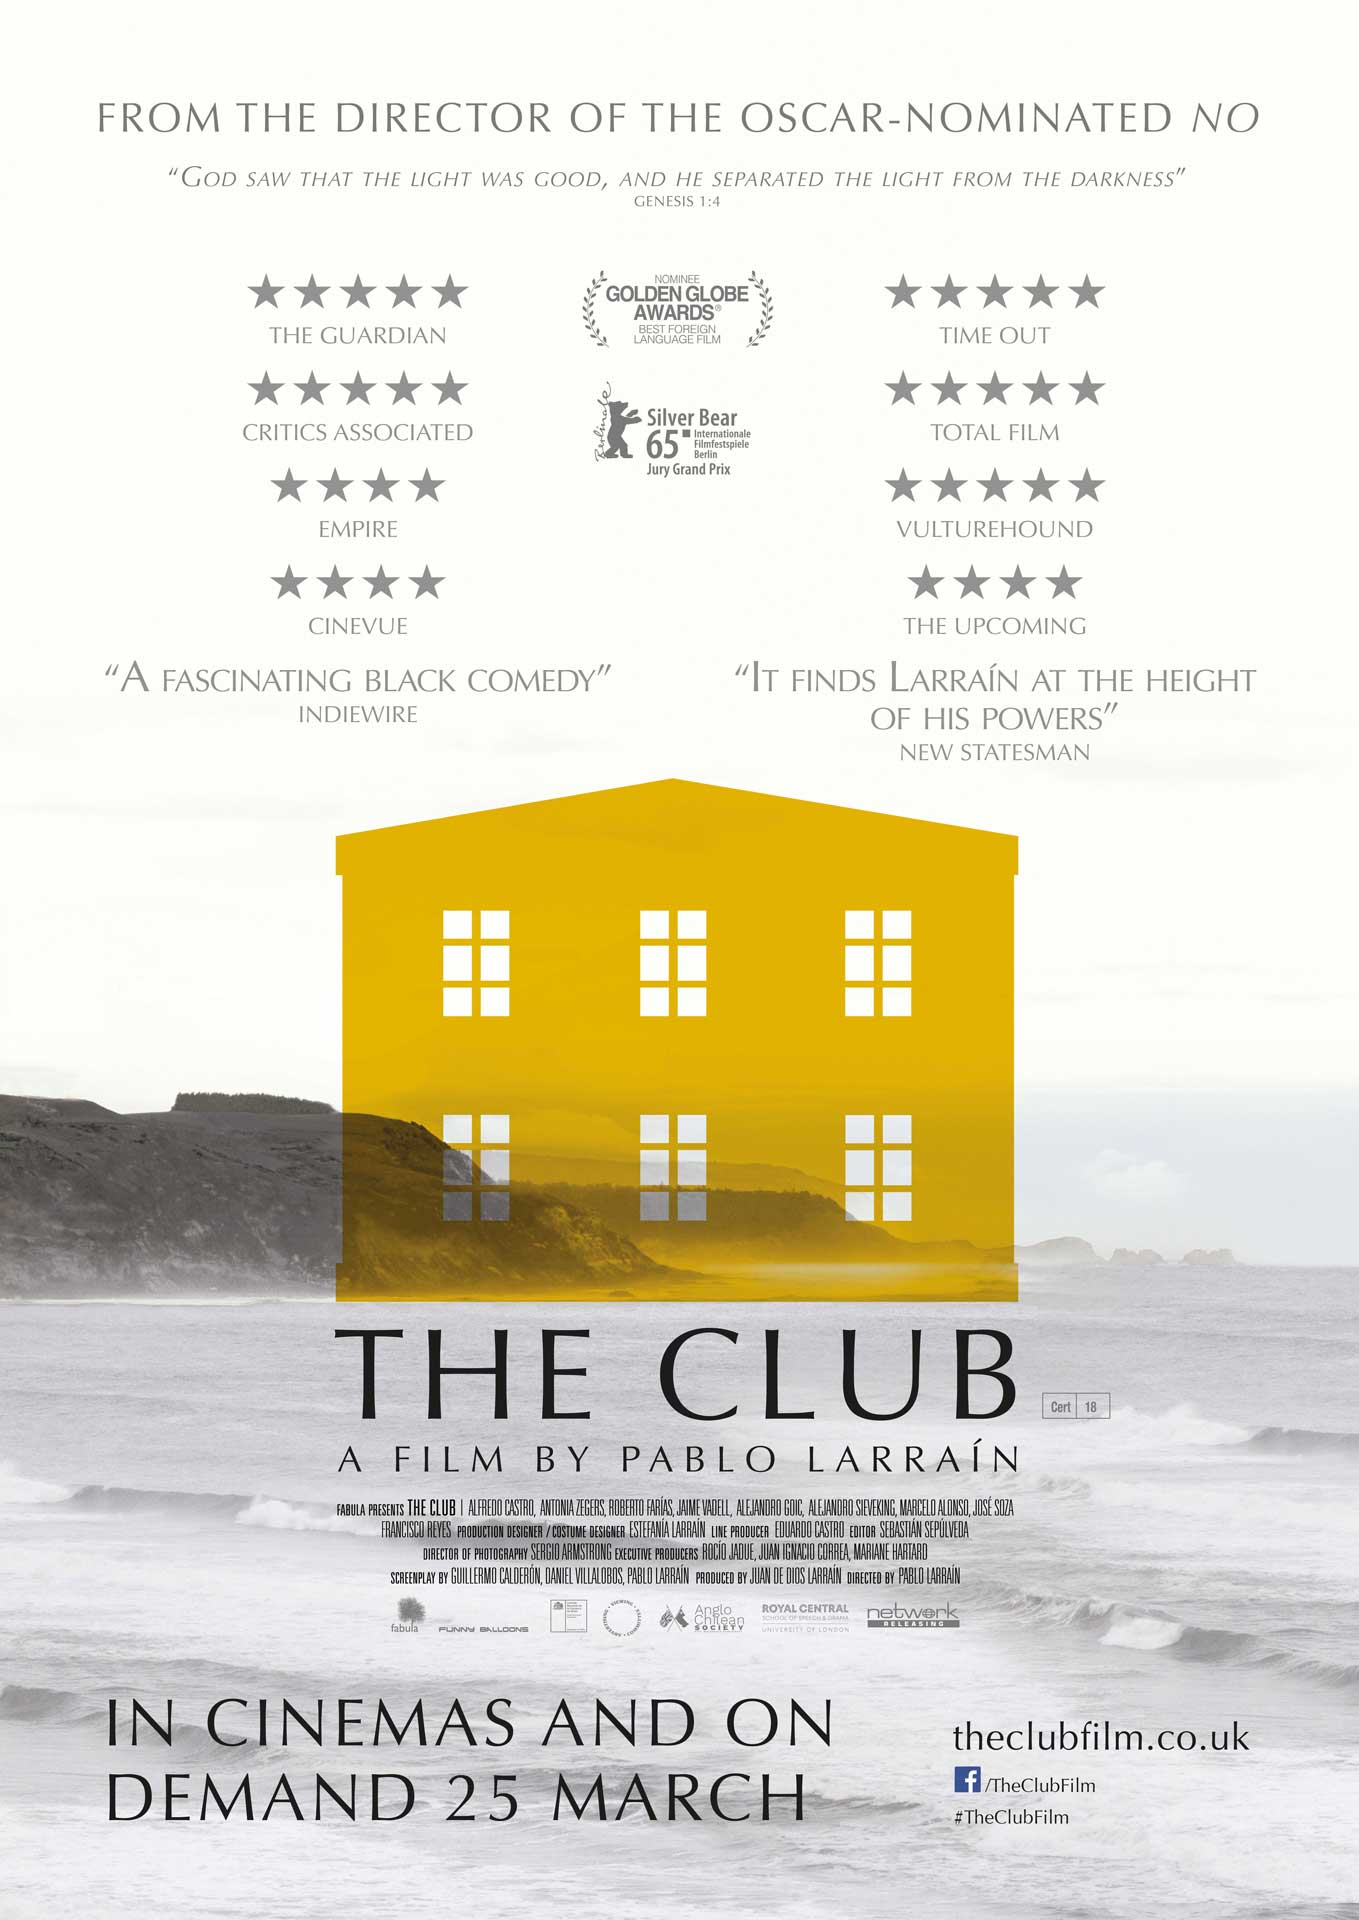 THE-CLUB-poster-portrait